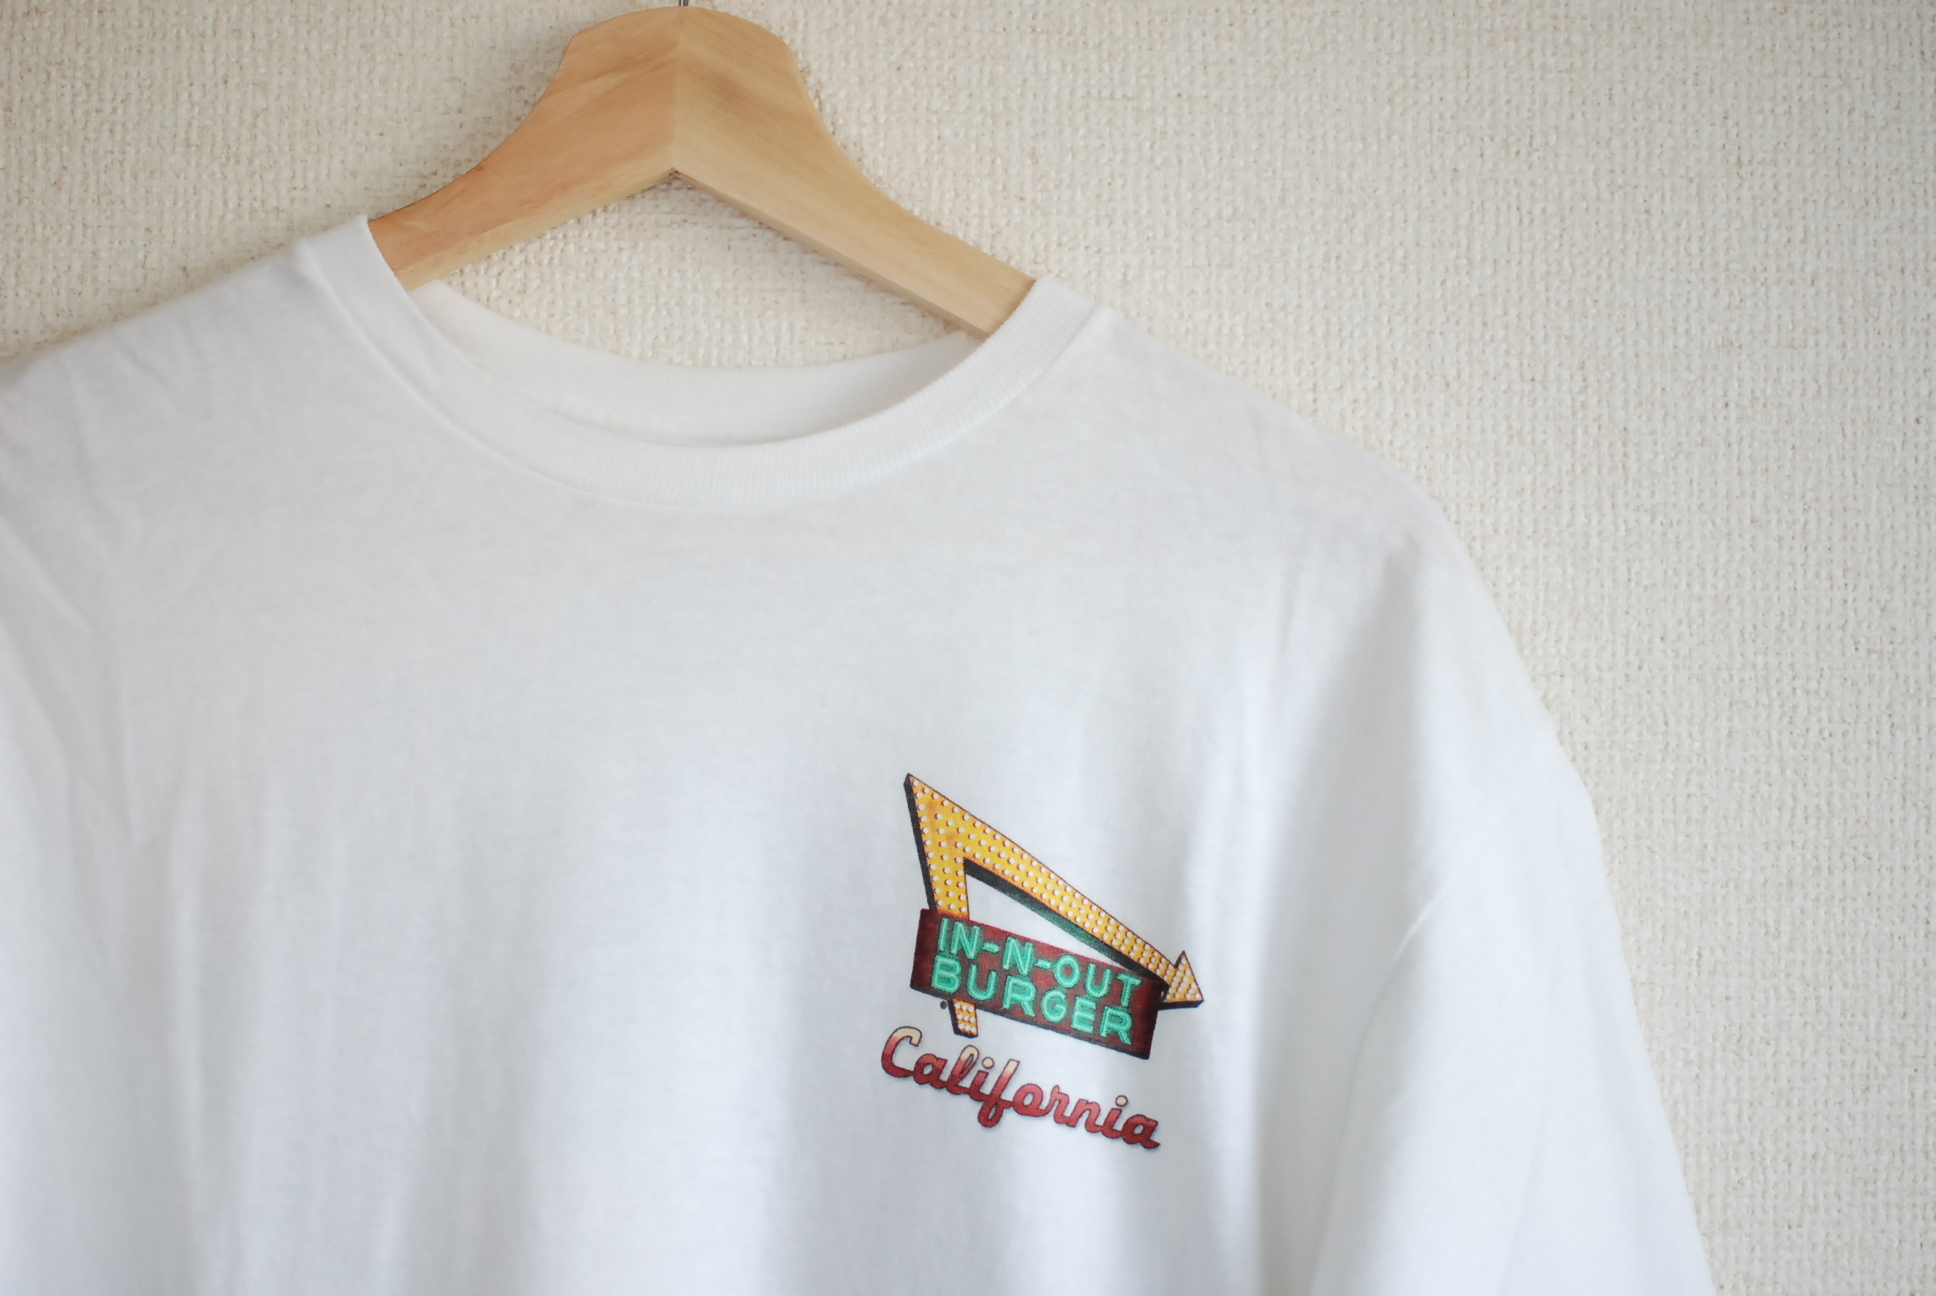 【UNISEX】USED IN-N-OUT Burger T-shirt 2017